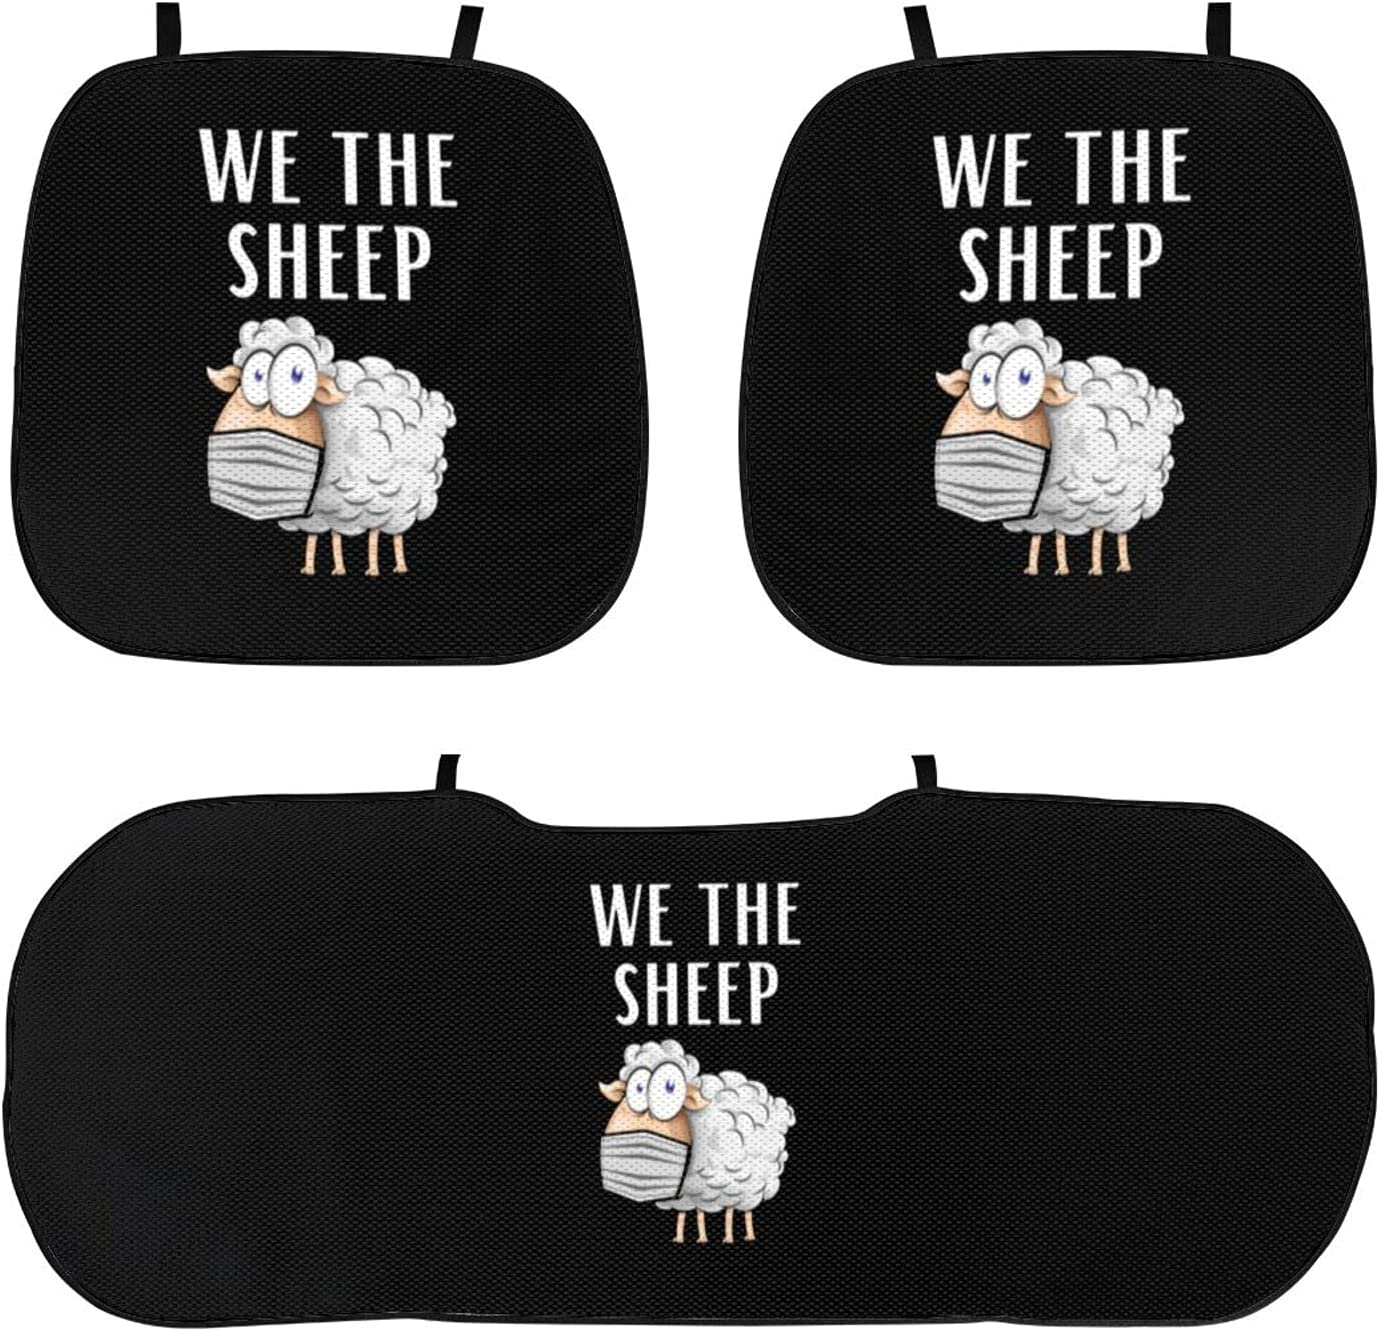 We The Sheeple Car ice Silk Cushion Max 89% OFF Wi Very popular high Exposure Temperature